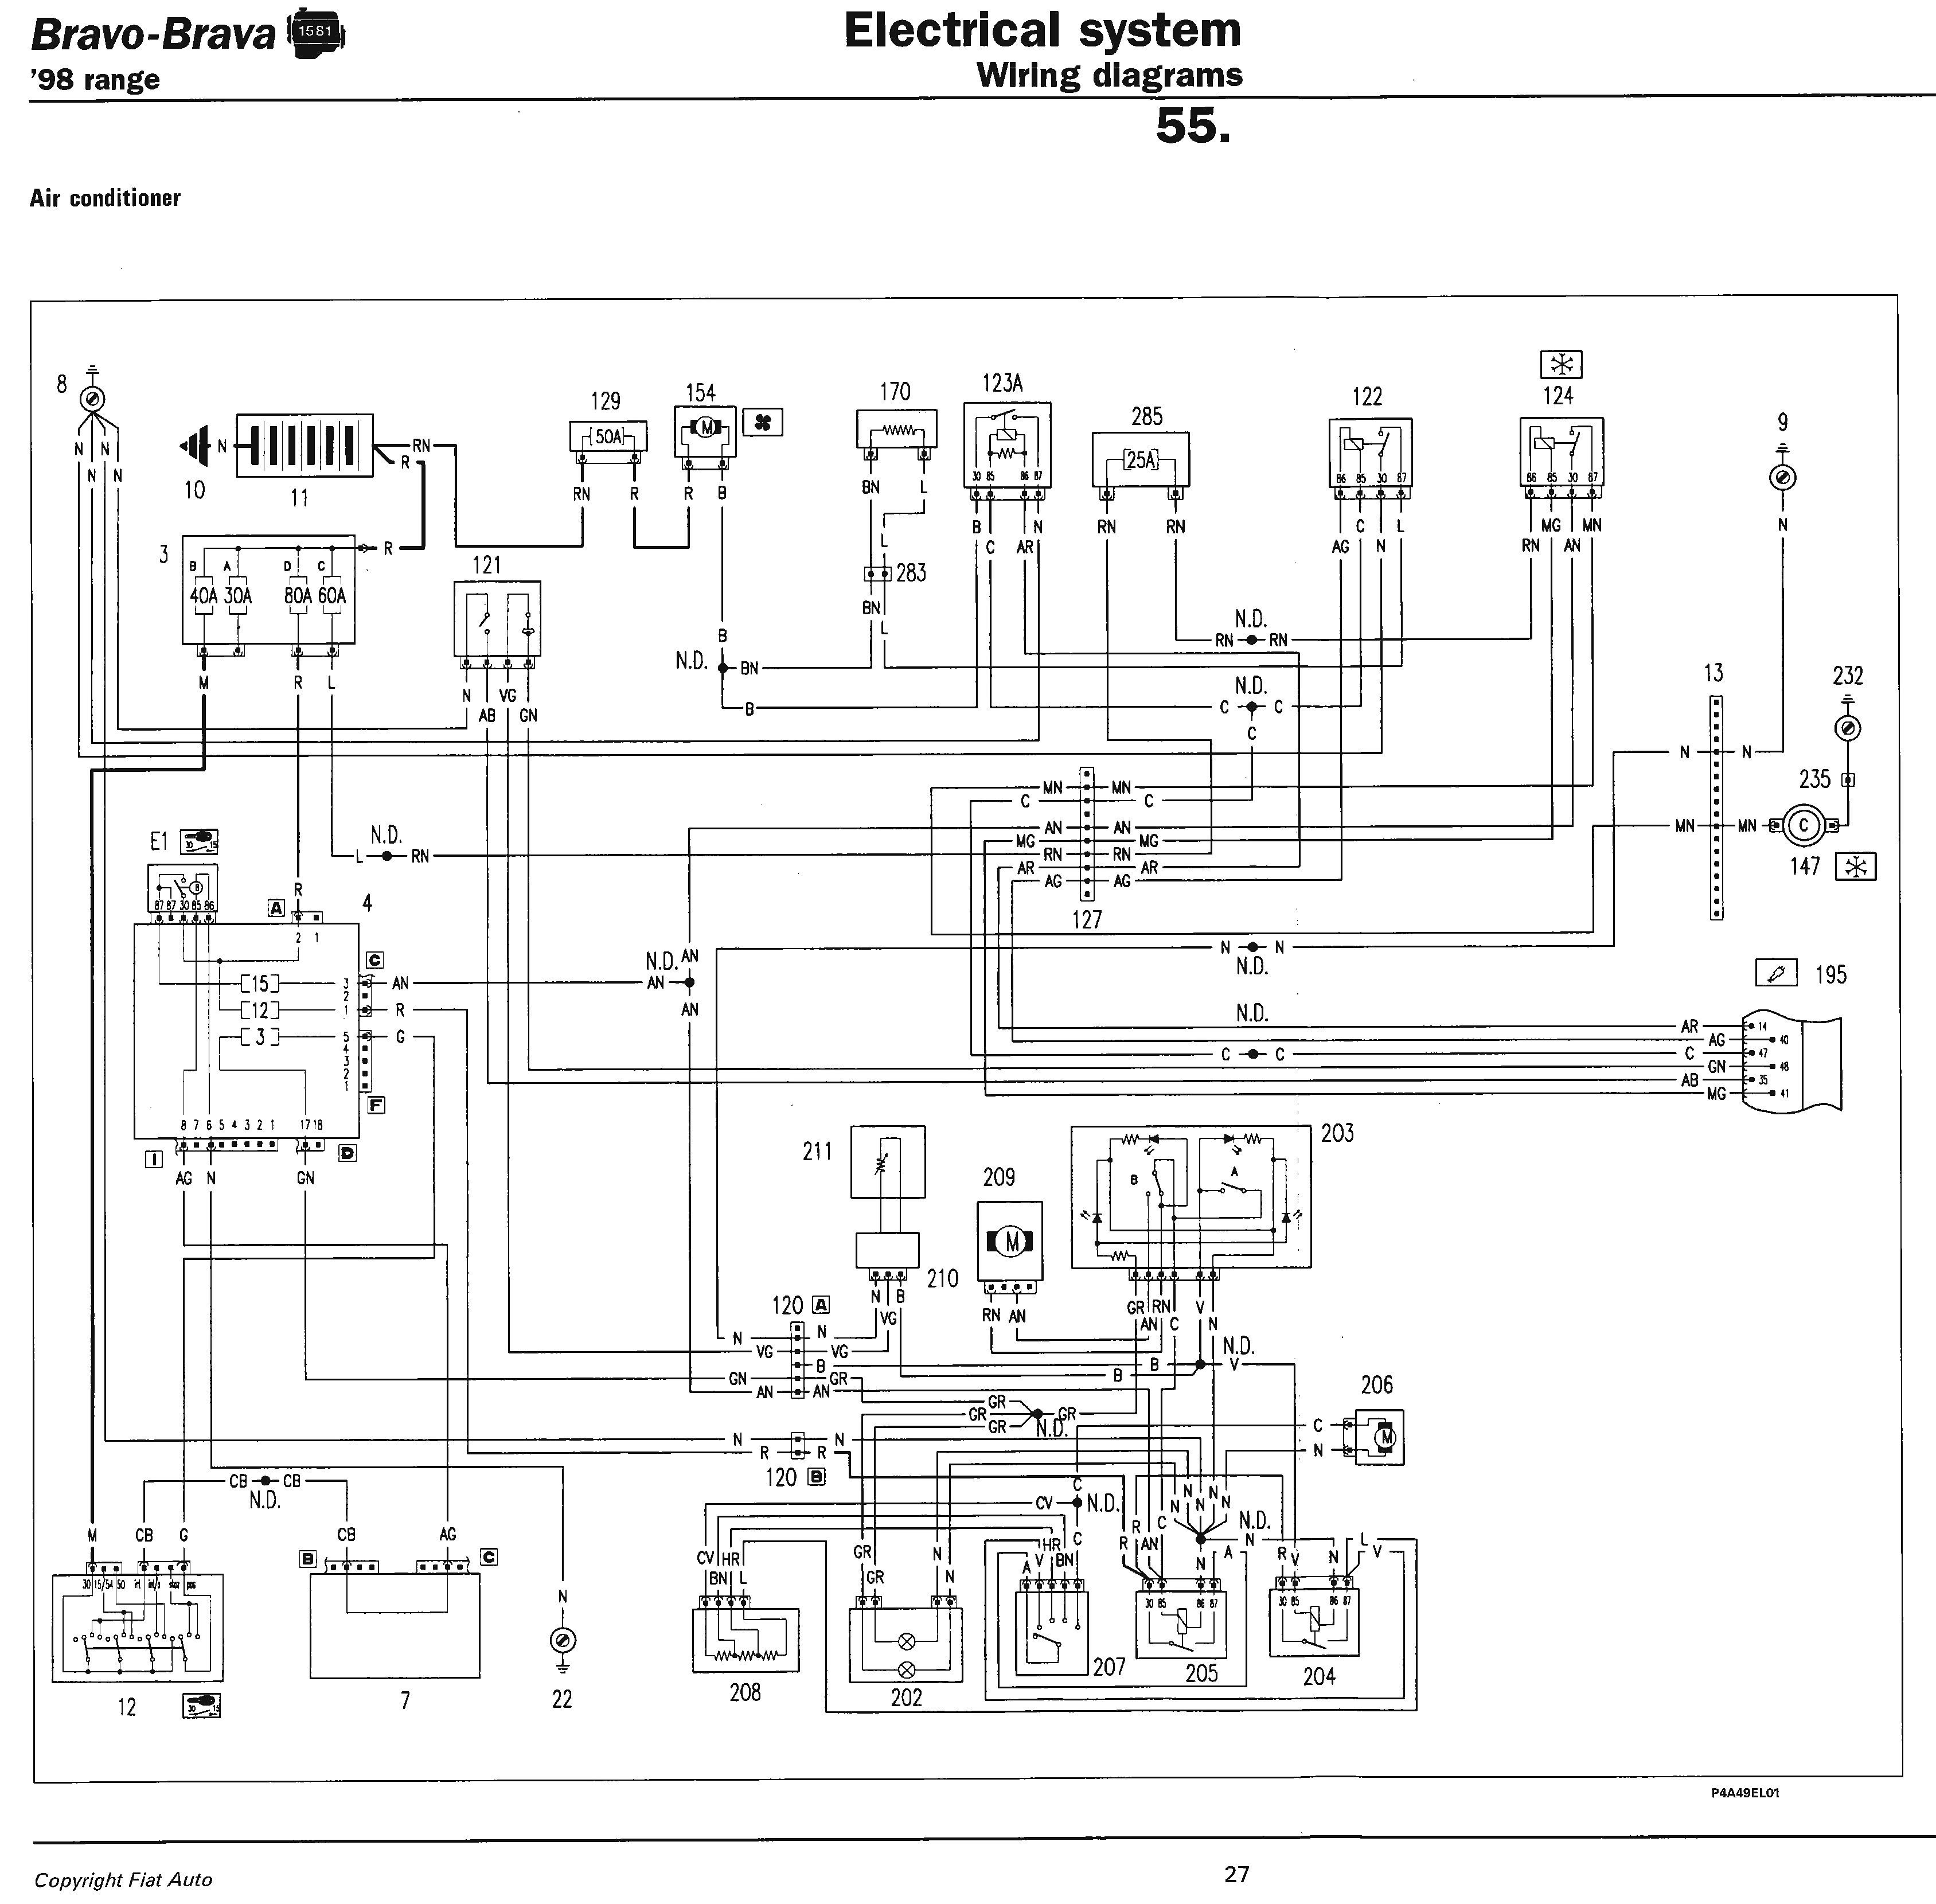 Bmw E90 Wiring Diagram Tips For Fitting Own Towbar E New Diagrams